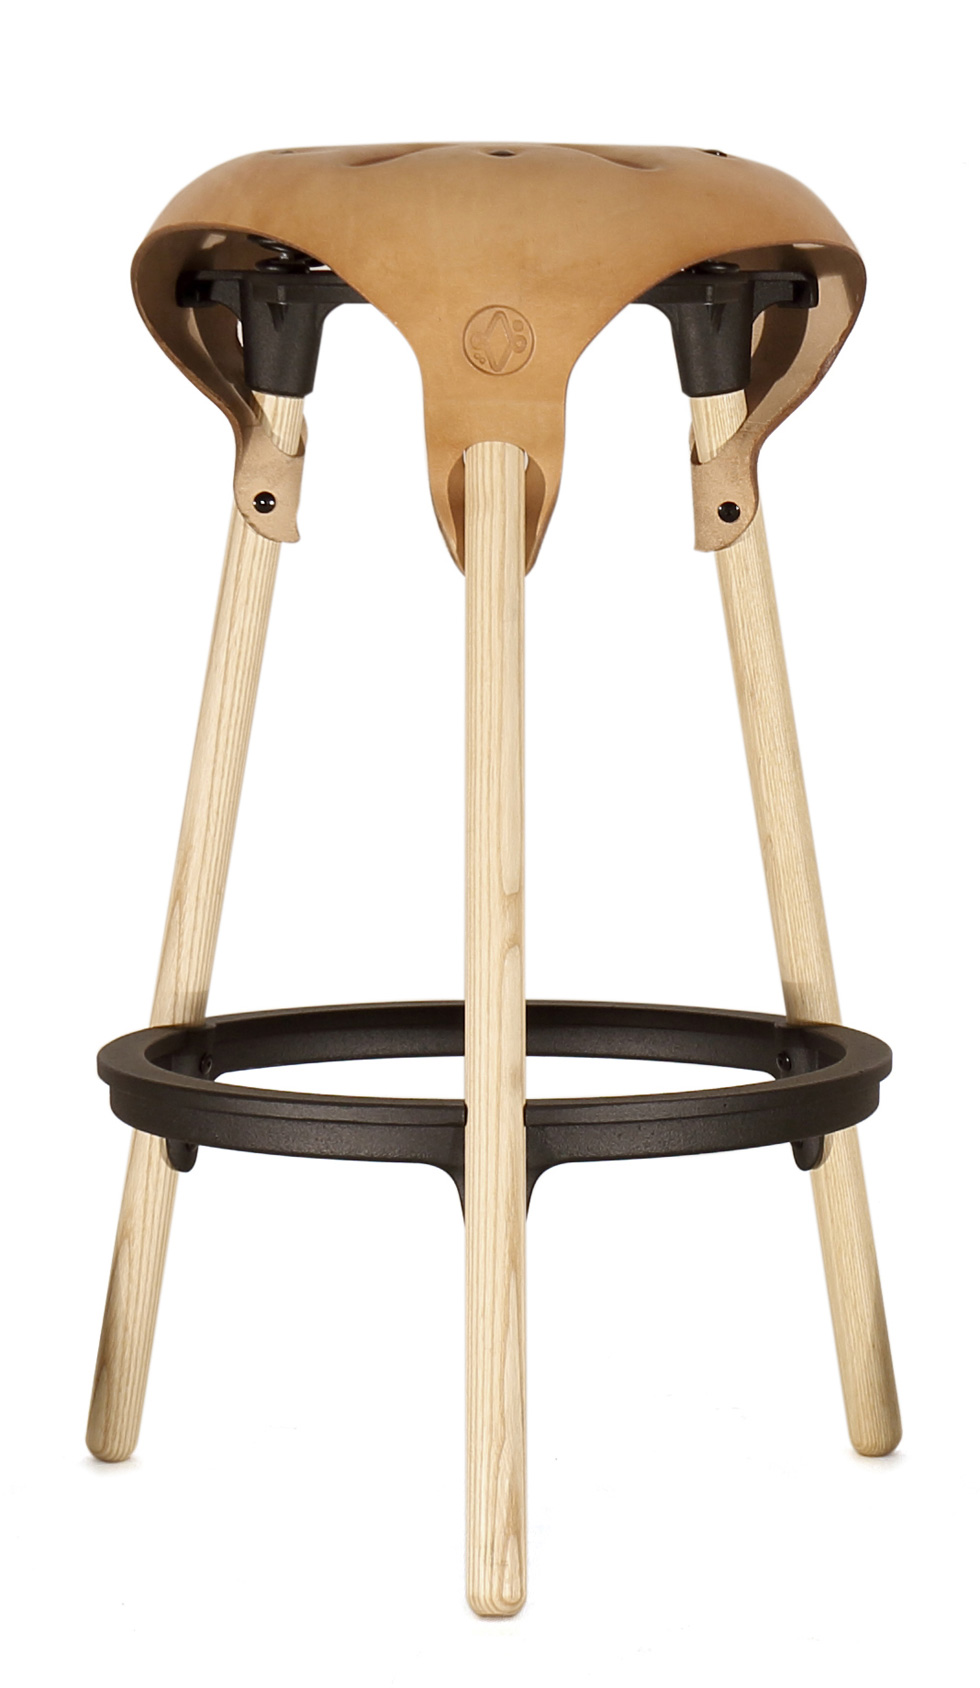 Saddle-stool-73-cm--black-frame-vroonland&vaandrager